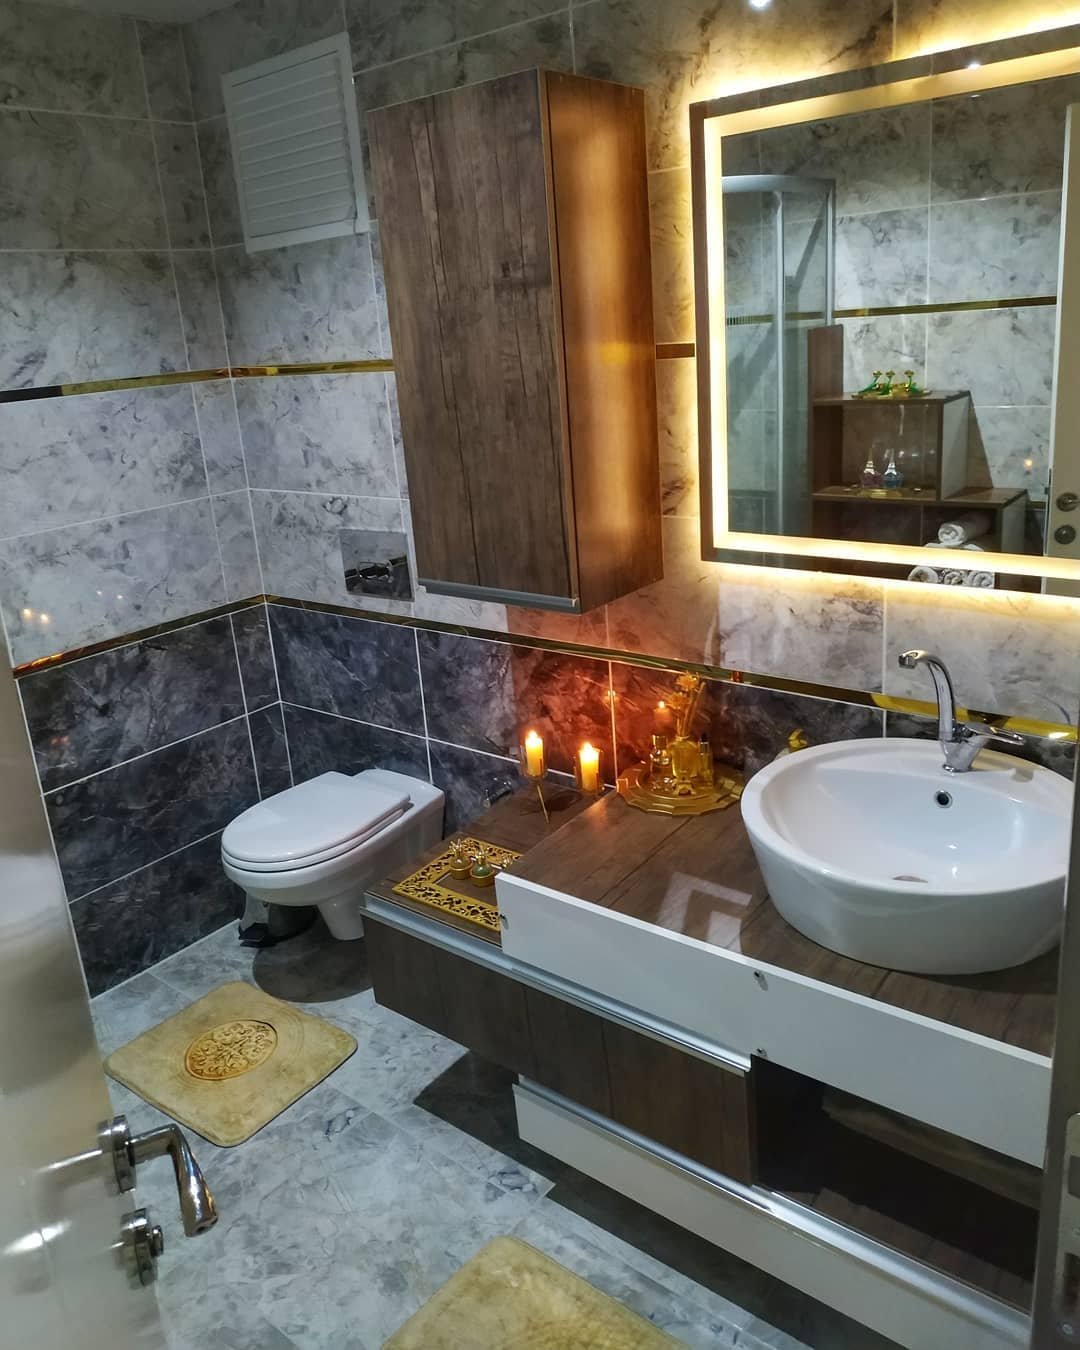 Home Decoration Bathroom models 2019 34